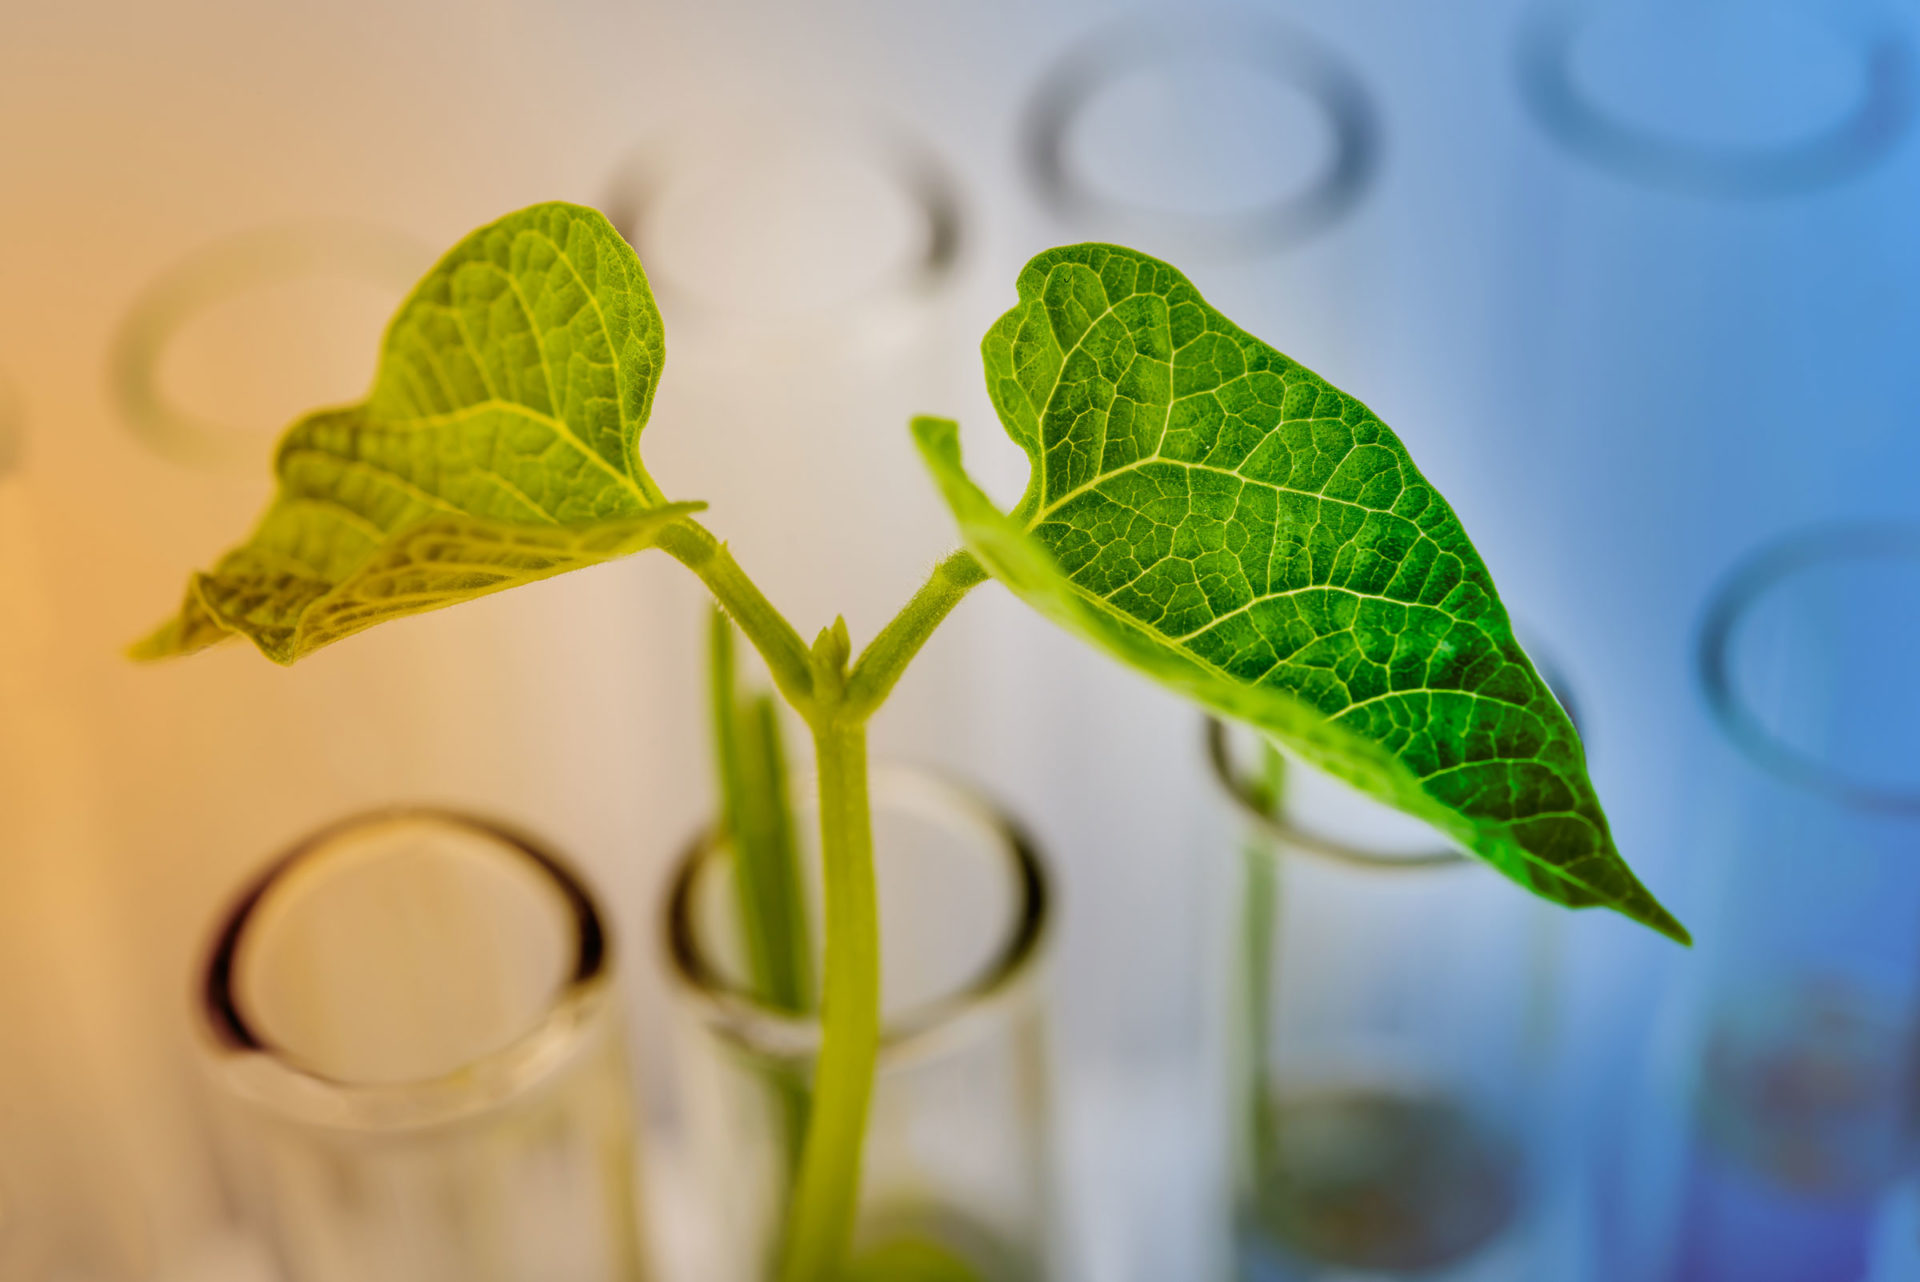 Knowledge drives the biobased chemical industry in the North